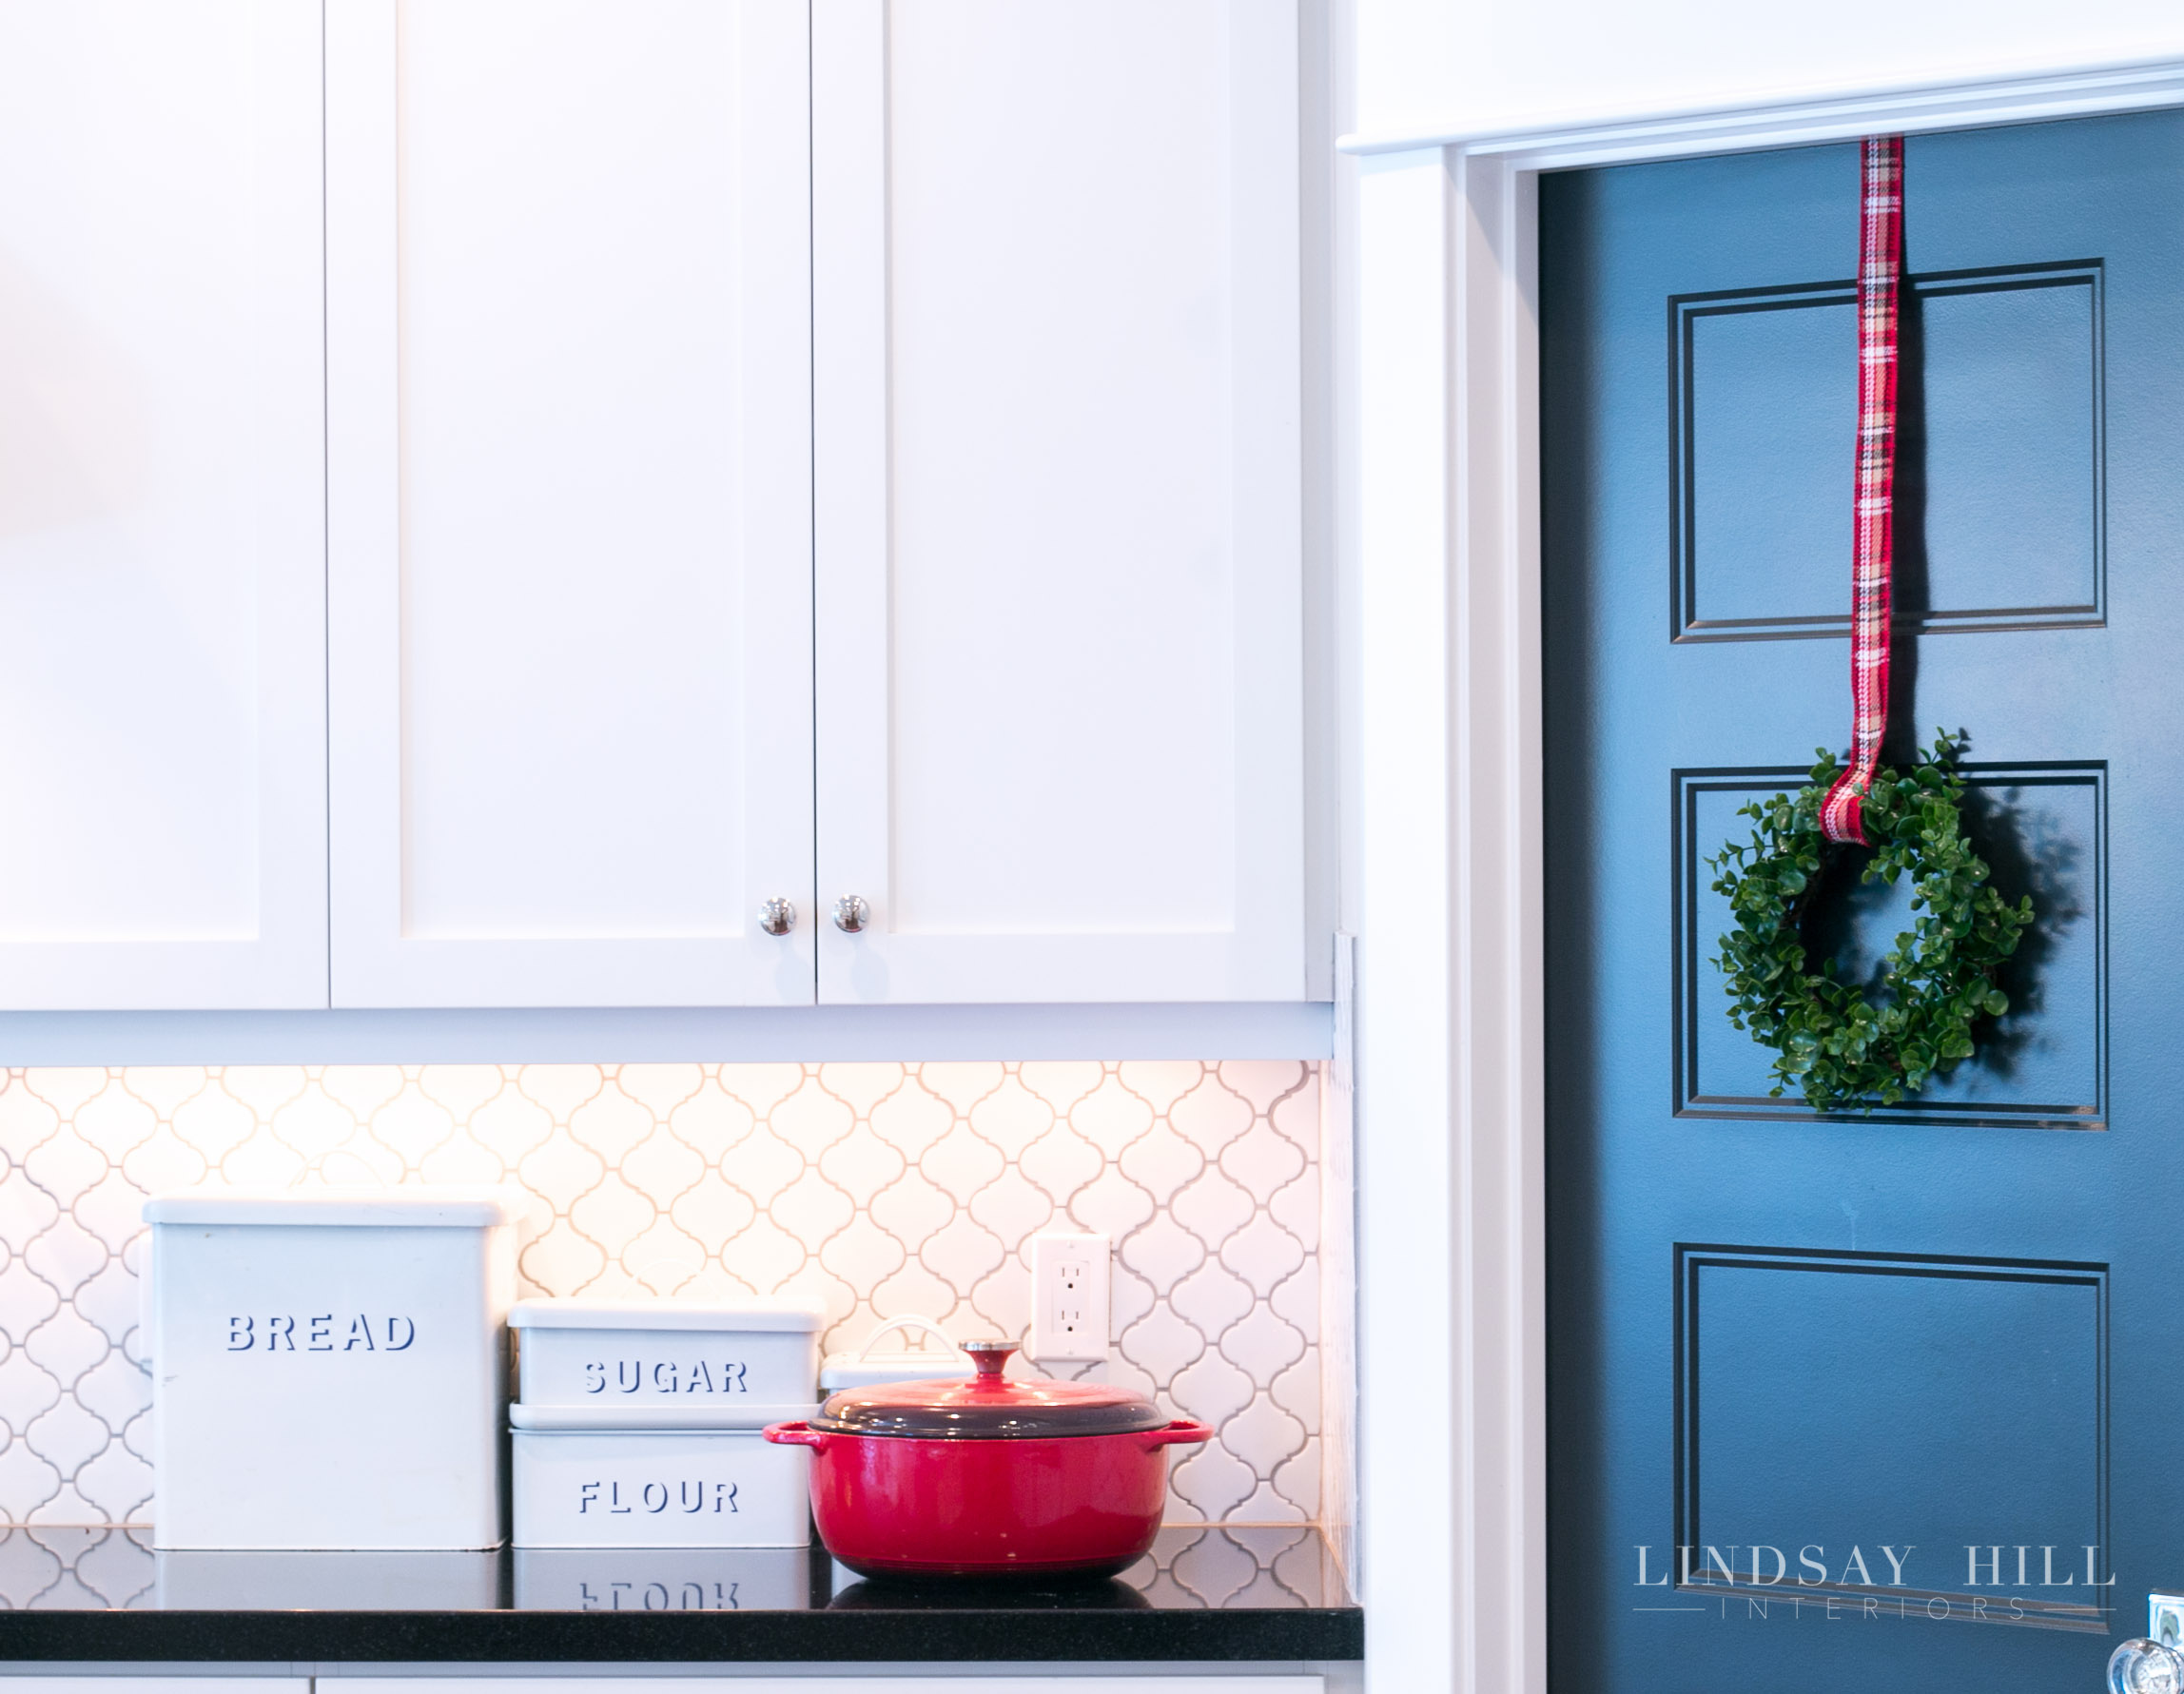 Lindsay Hill Interiors holiday home tour wreath on pantry door